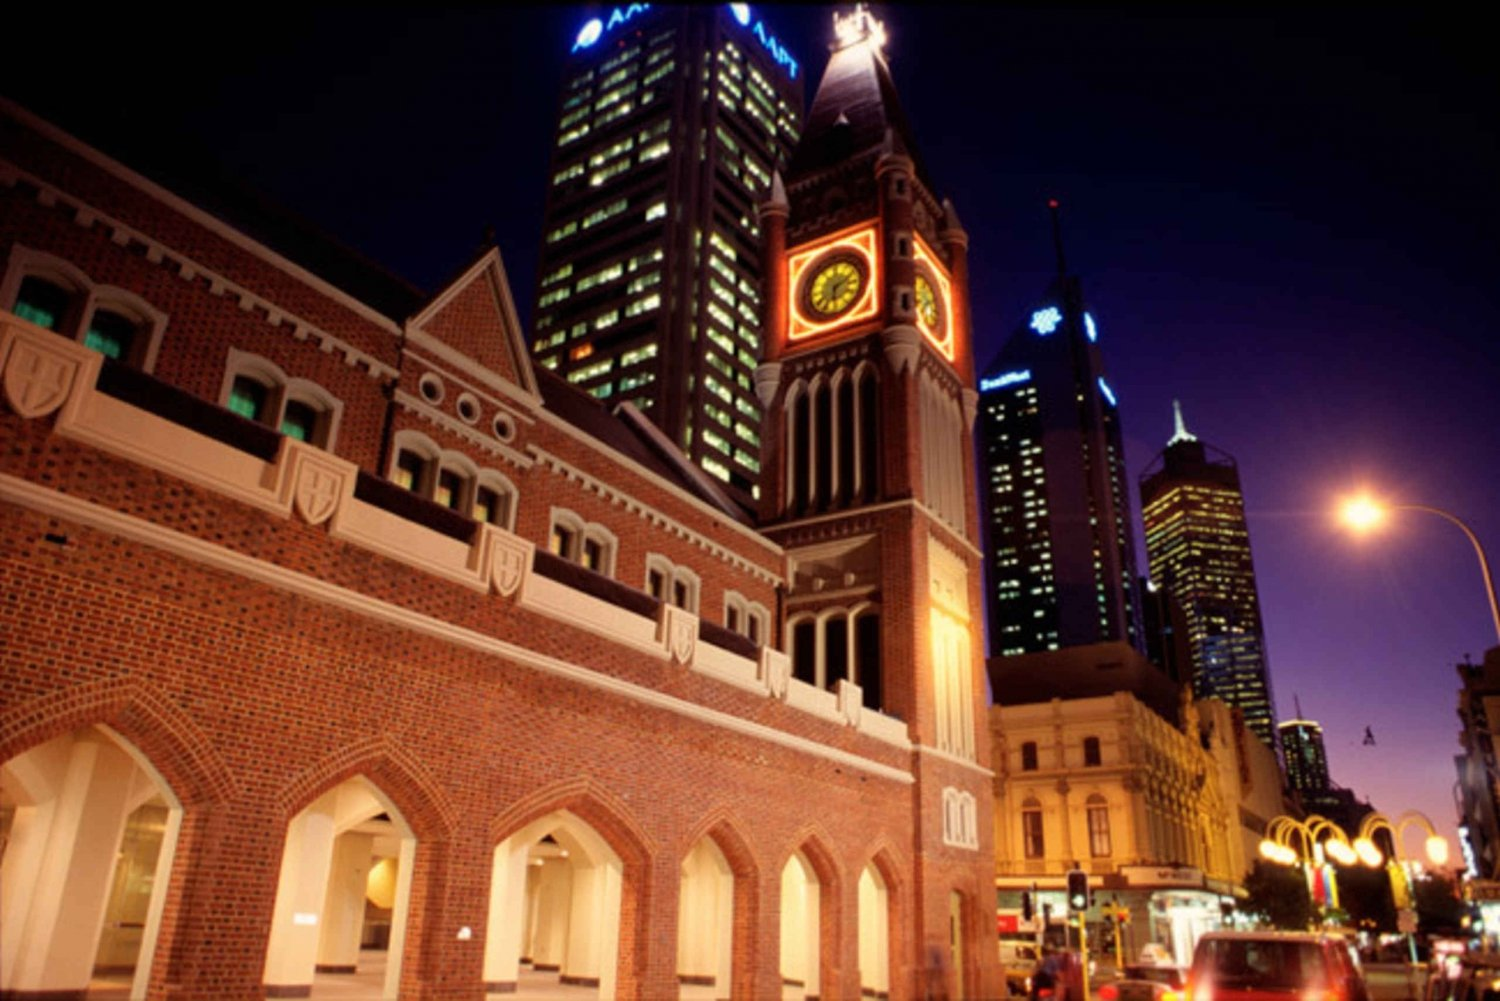 Perth Self-Guided Audio Tour